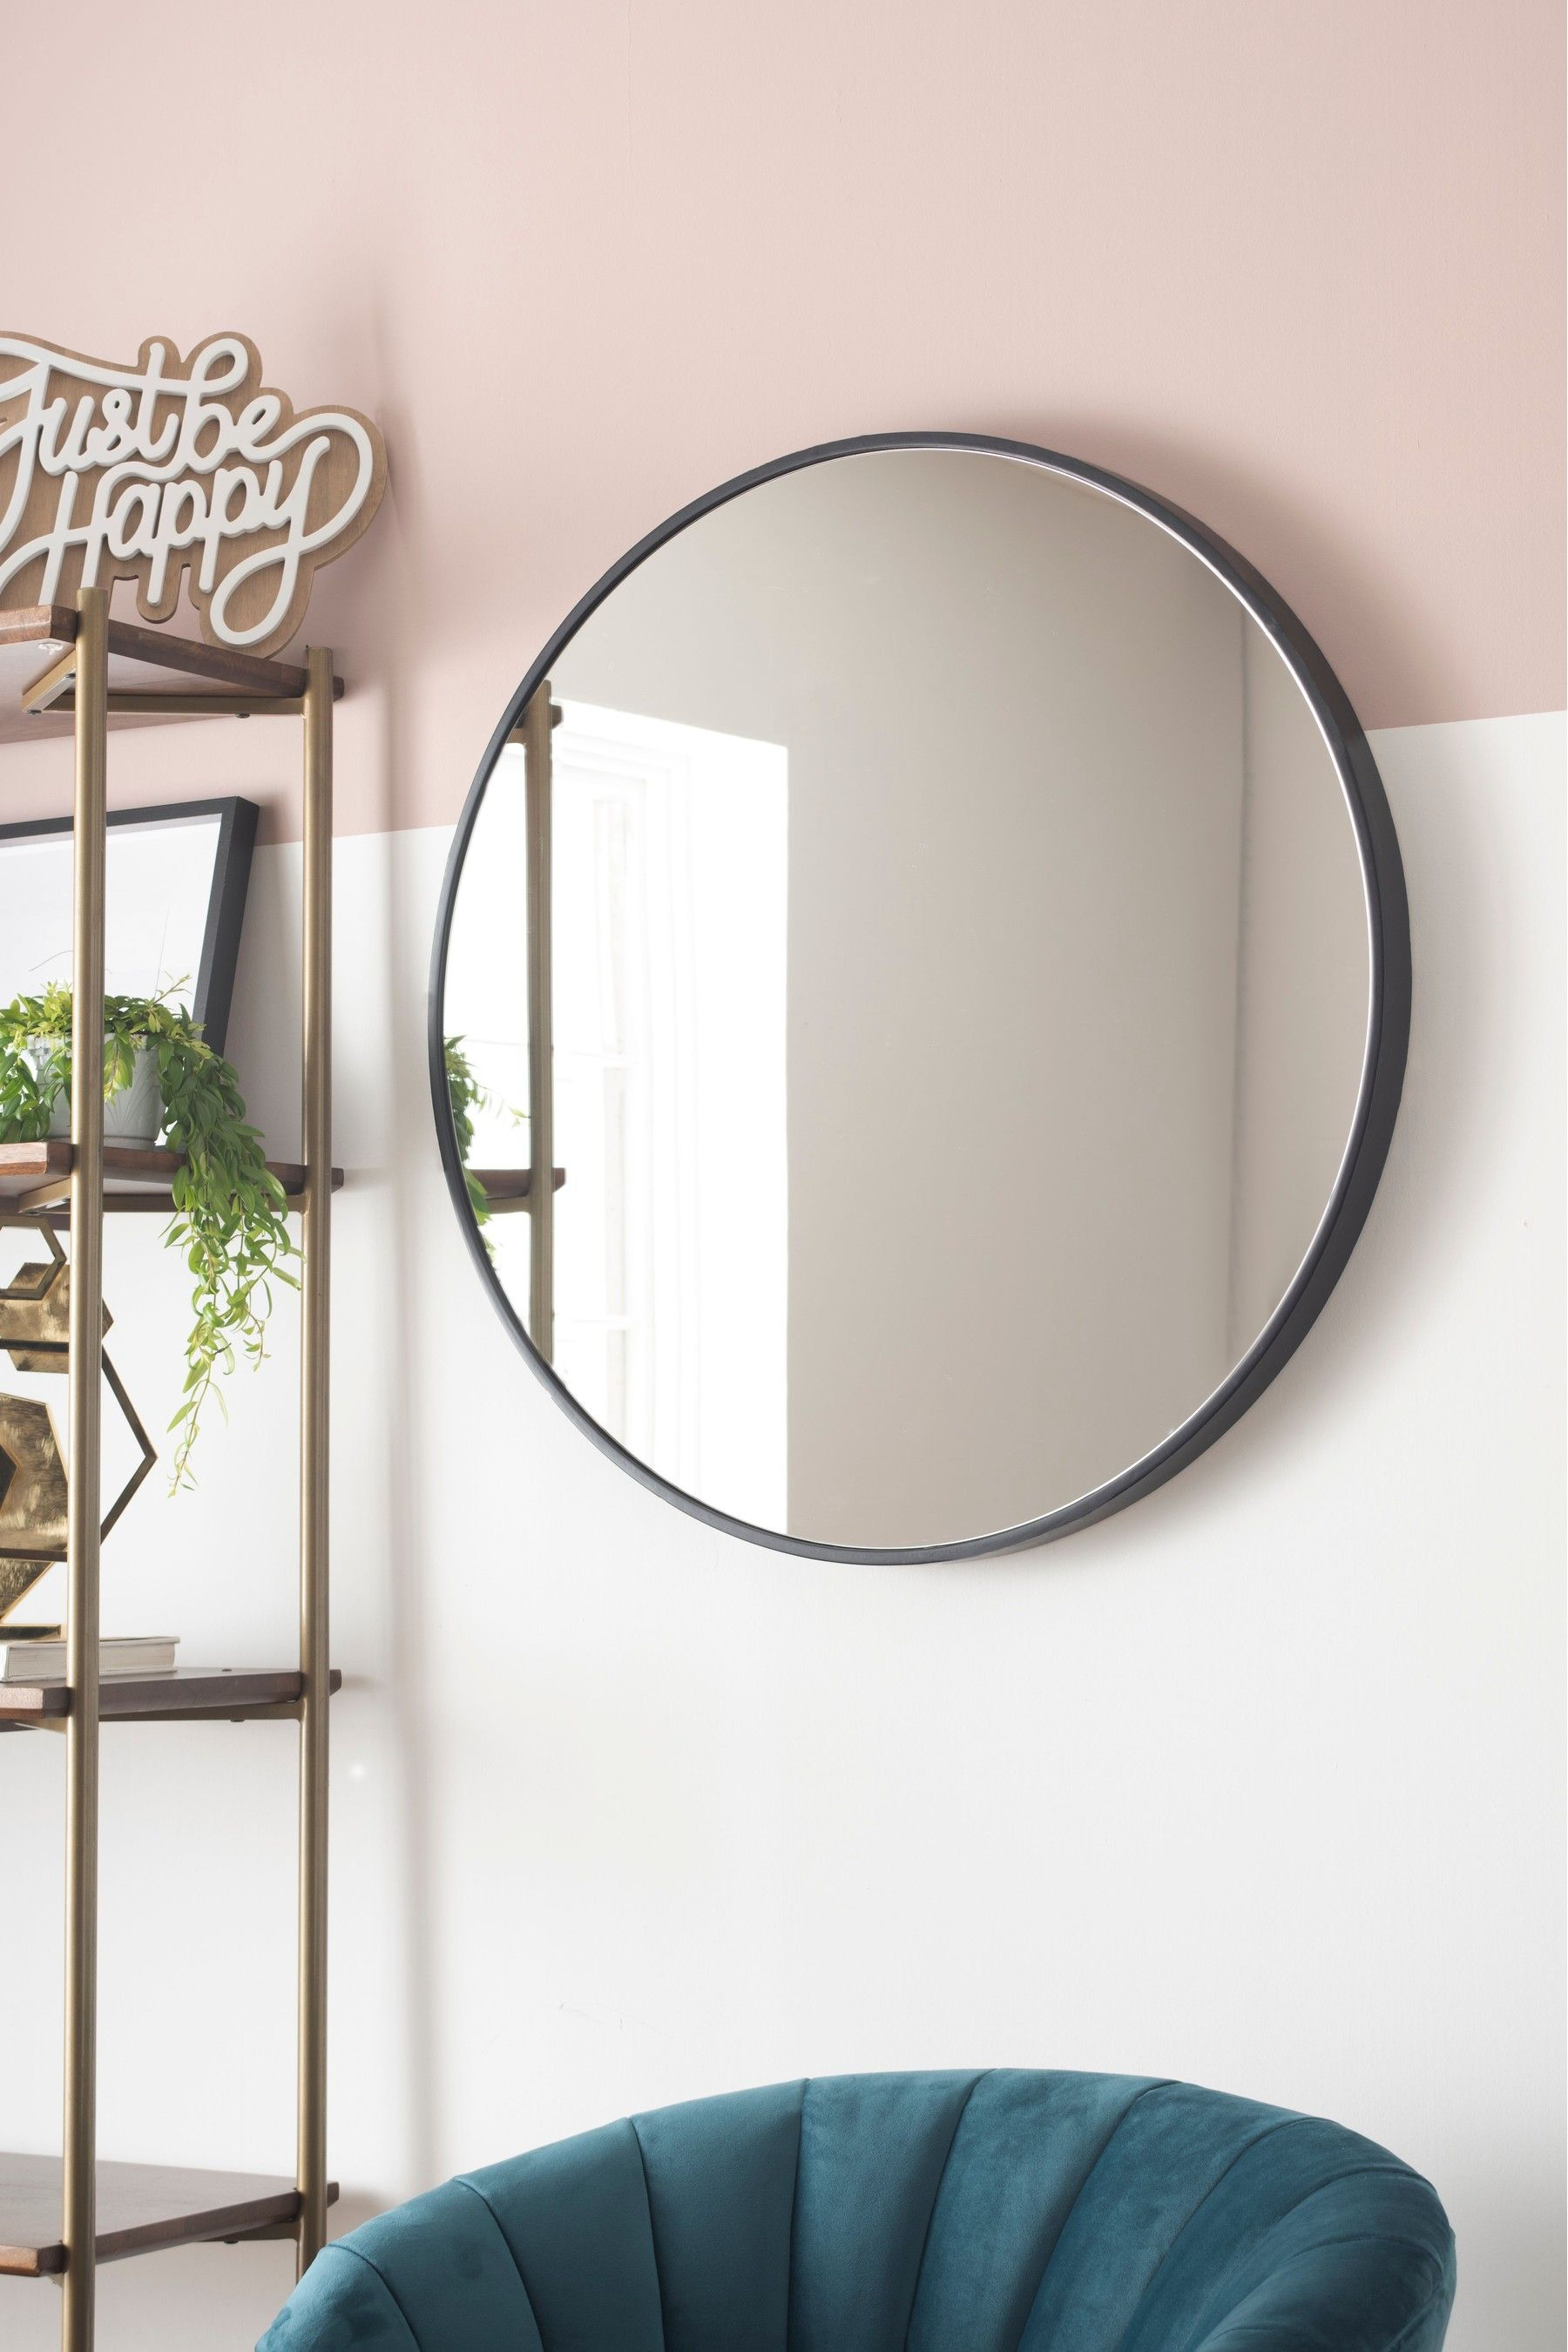 Buy Large Round Mirror From The Next Uk Online Shop In 2020 Large Round Mirror Round Mirrors Black Round Mirror